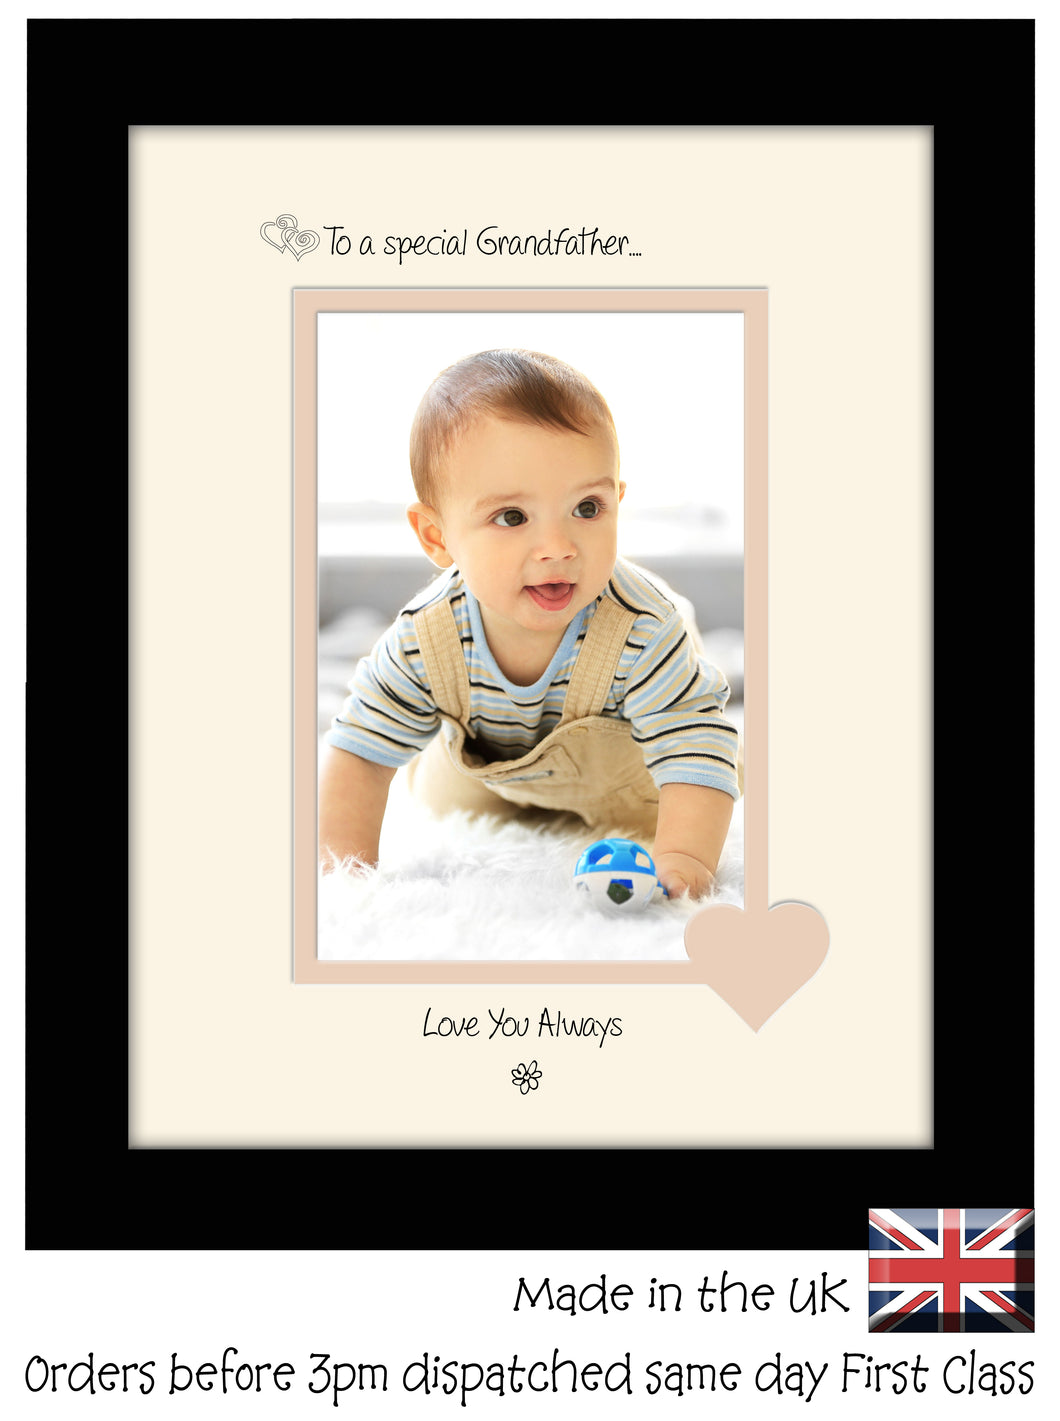 Grandfather Photo Frame - To a Special Grandfather ... Love you ...